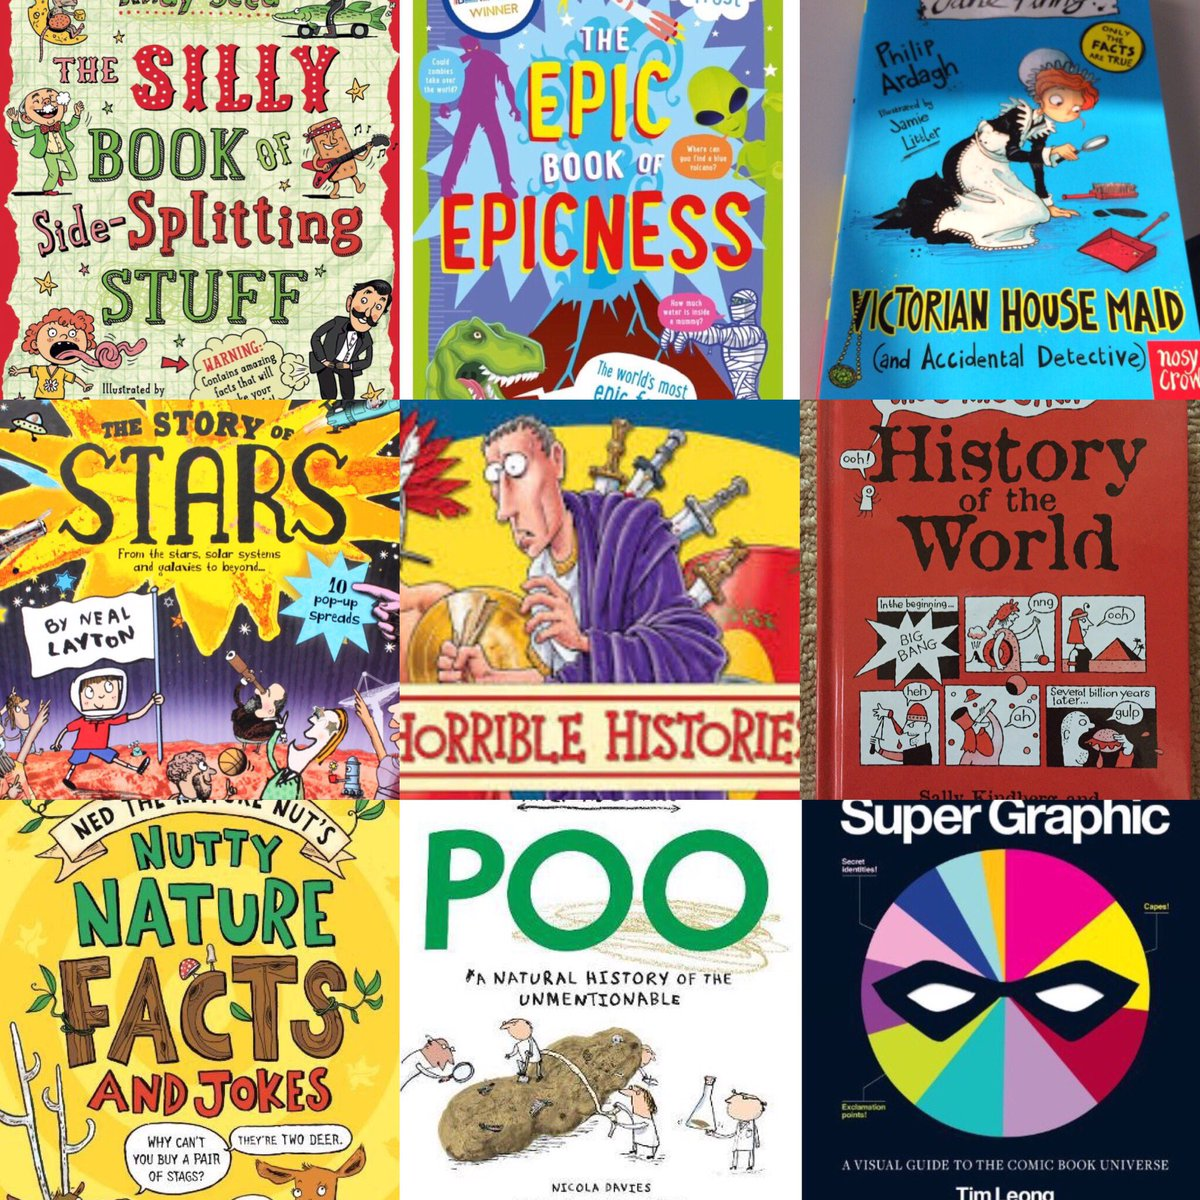 #FunnyBookFriday is shaping up nicely with a #NonFiction theme. Share your favourites. <br>http://pic.twitter.com/LH1svZd4e6